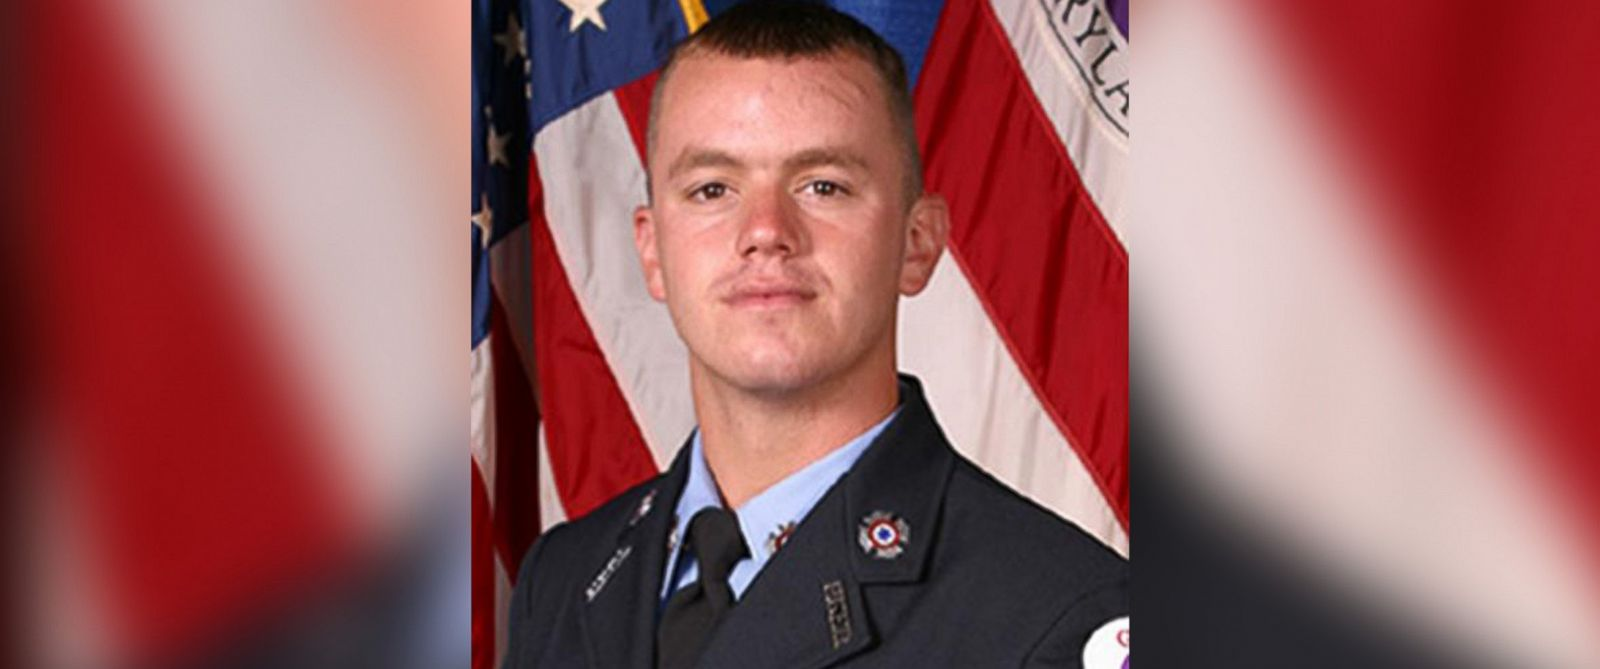 PHOTO: Maryland firefighter John Ernest Ulmschneider, pictured as a recruit circa 2003, was shot and killed while responding to a welfare check in Prince Georges County, April 15, 2016.